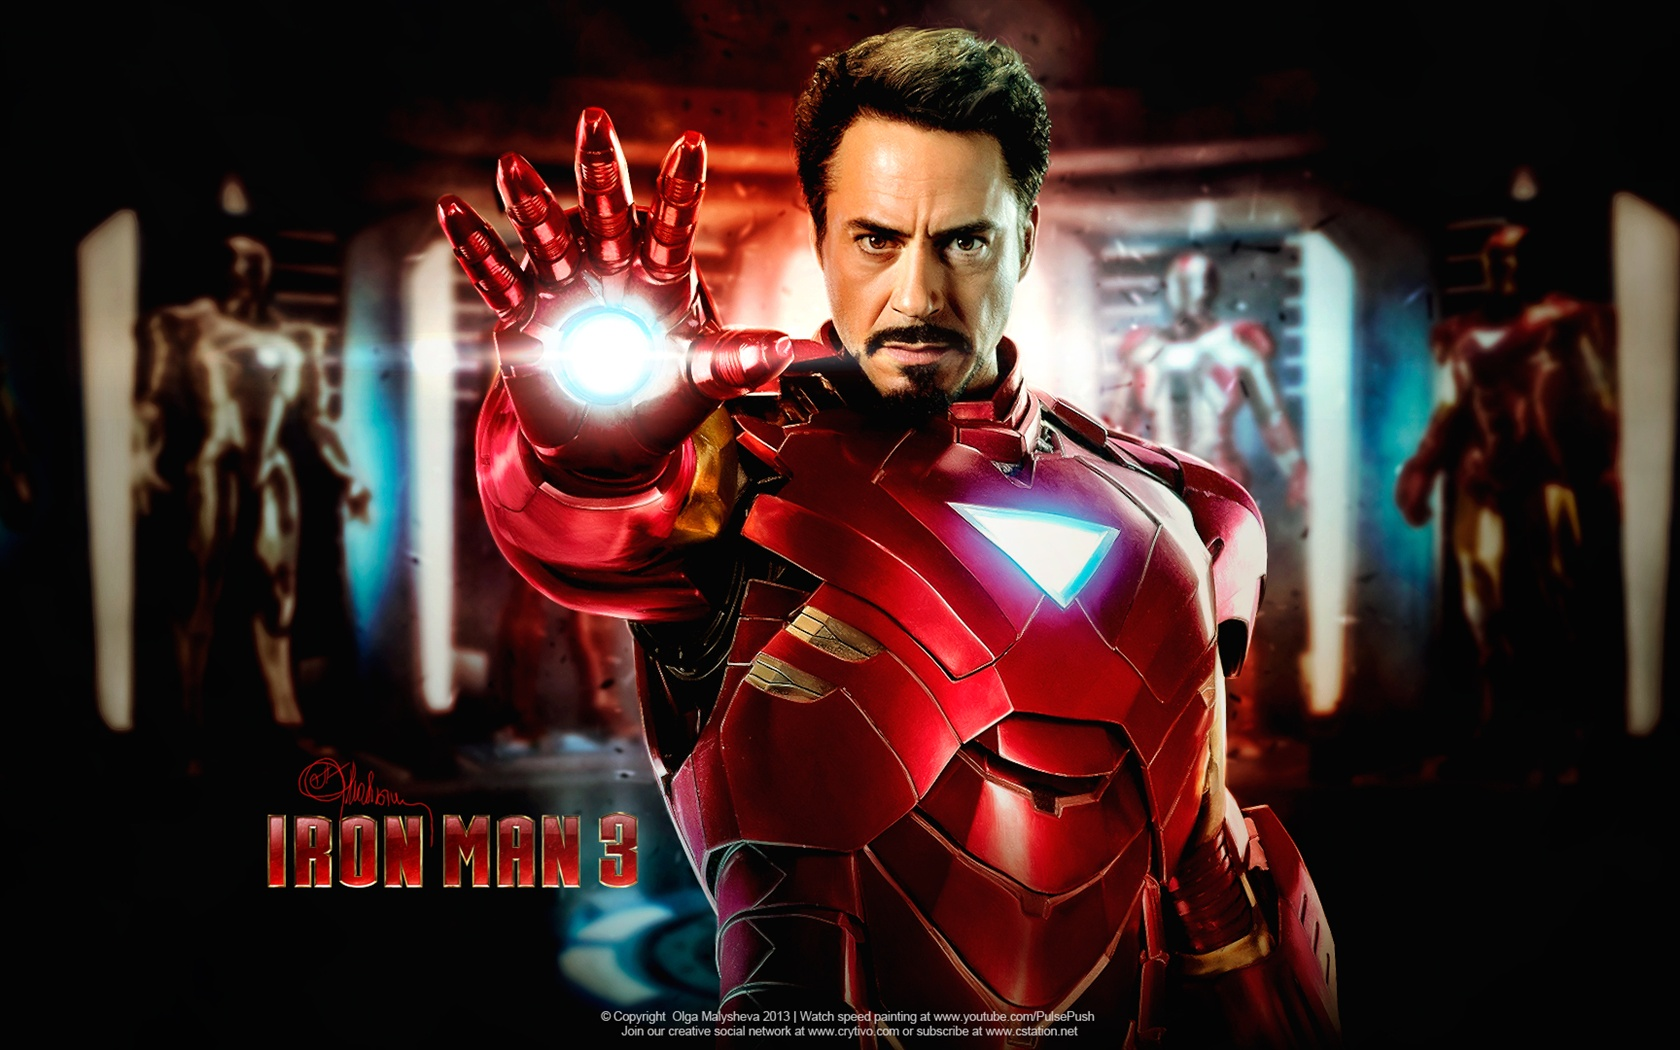 Fonds d 39 cran iron man 3 robert downey jr 2013 film - Iron man 2 telecharger ...